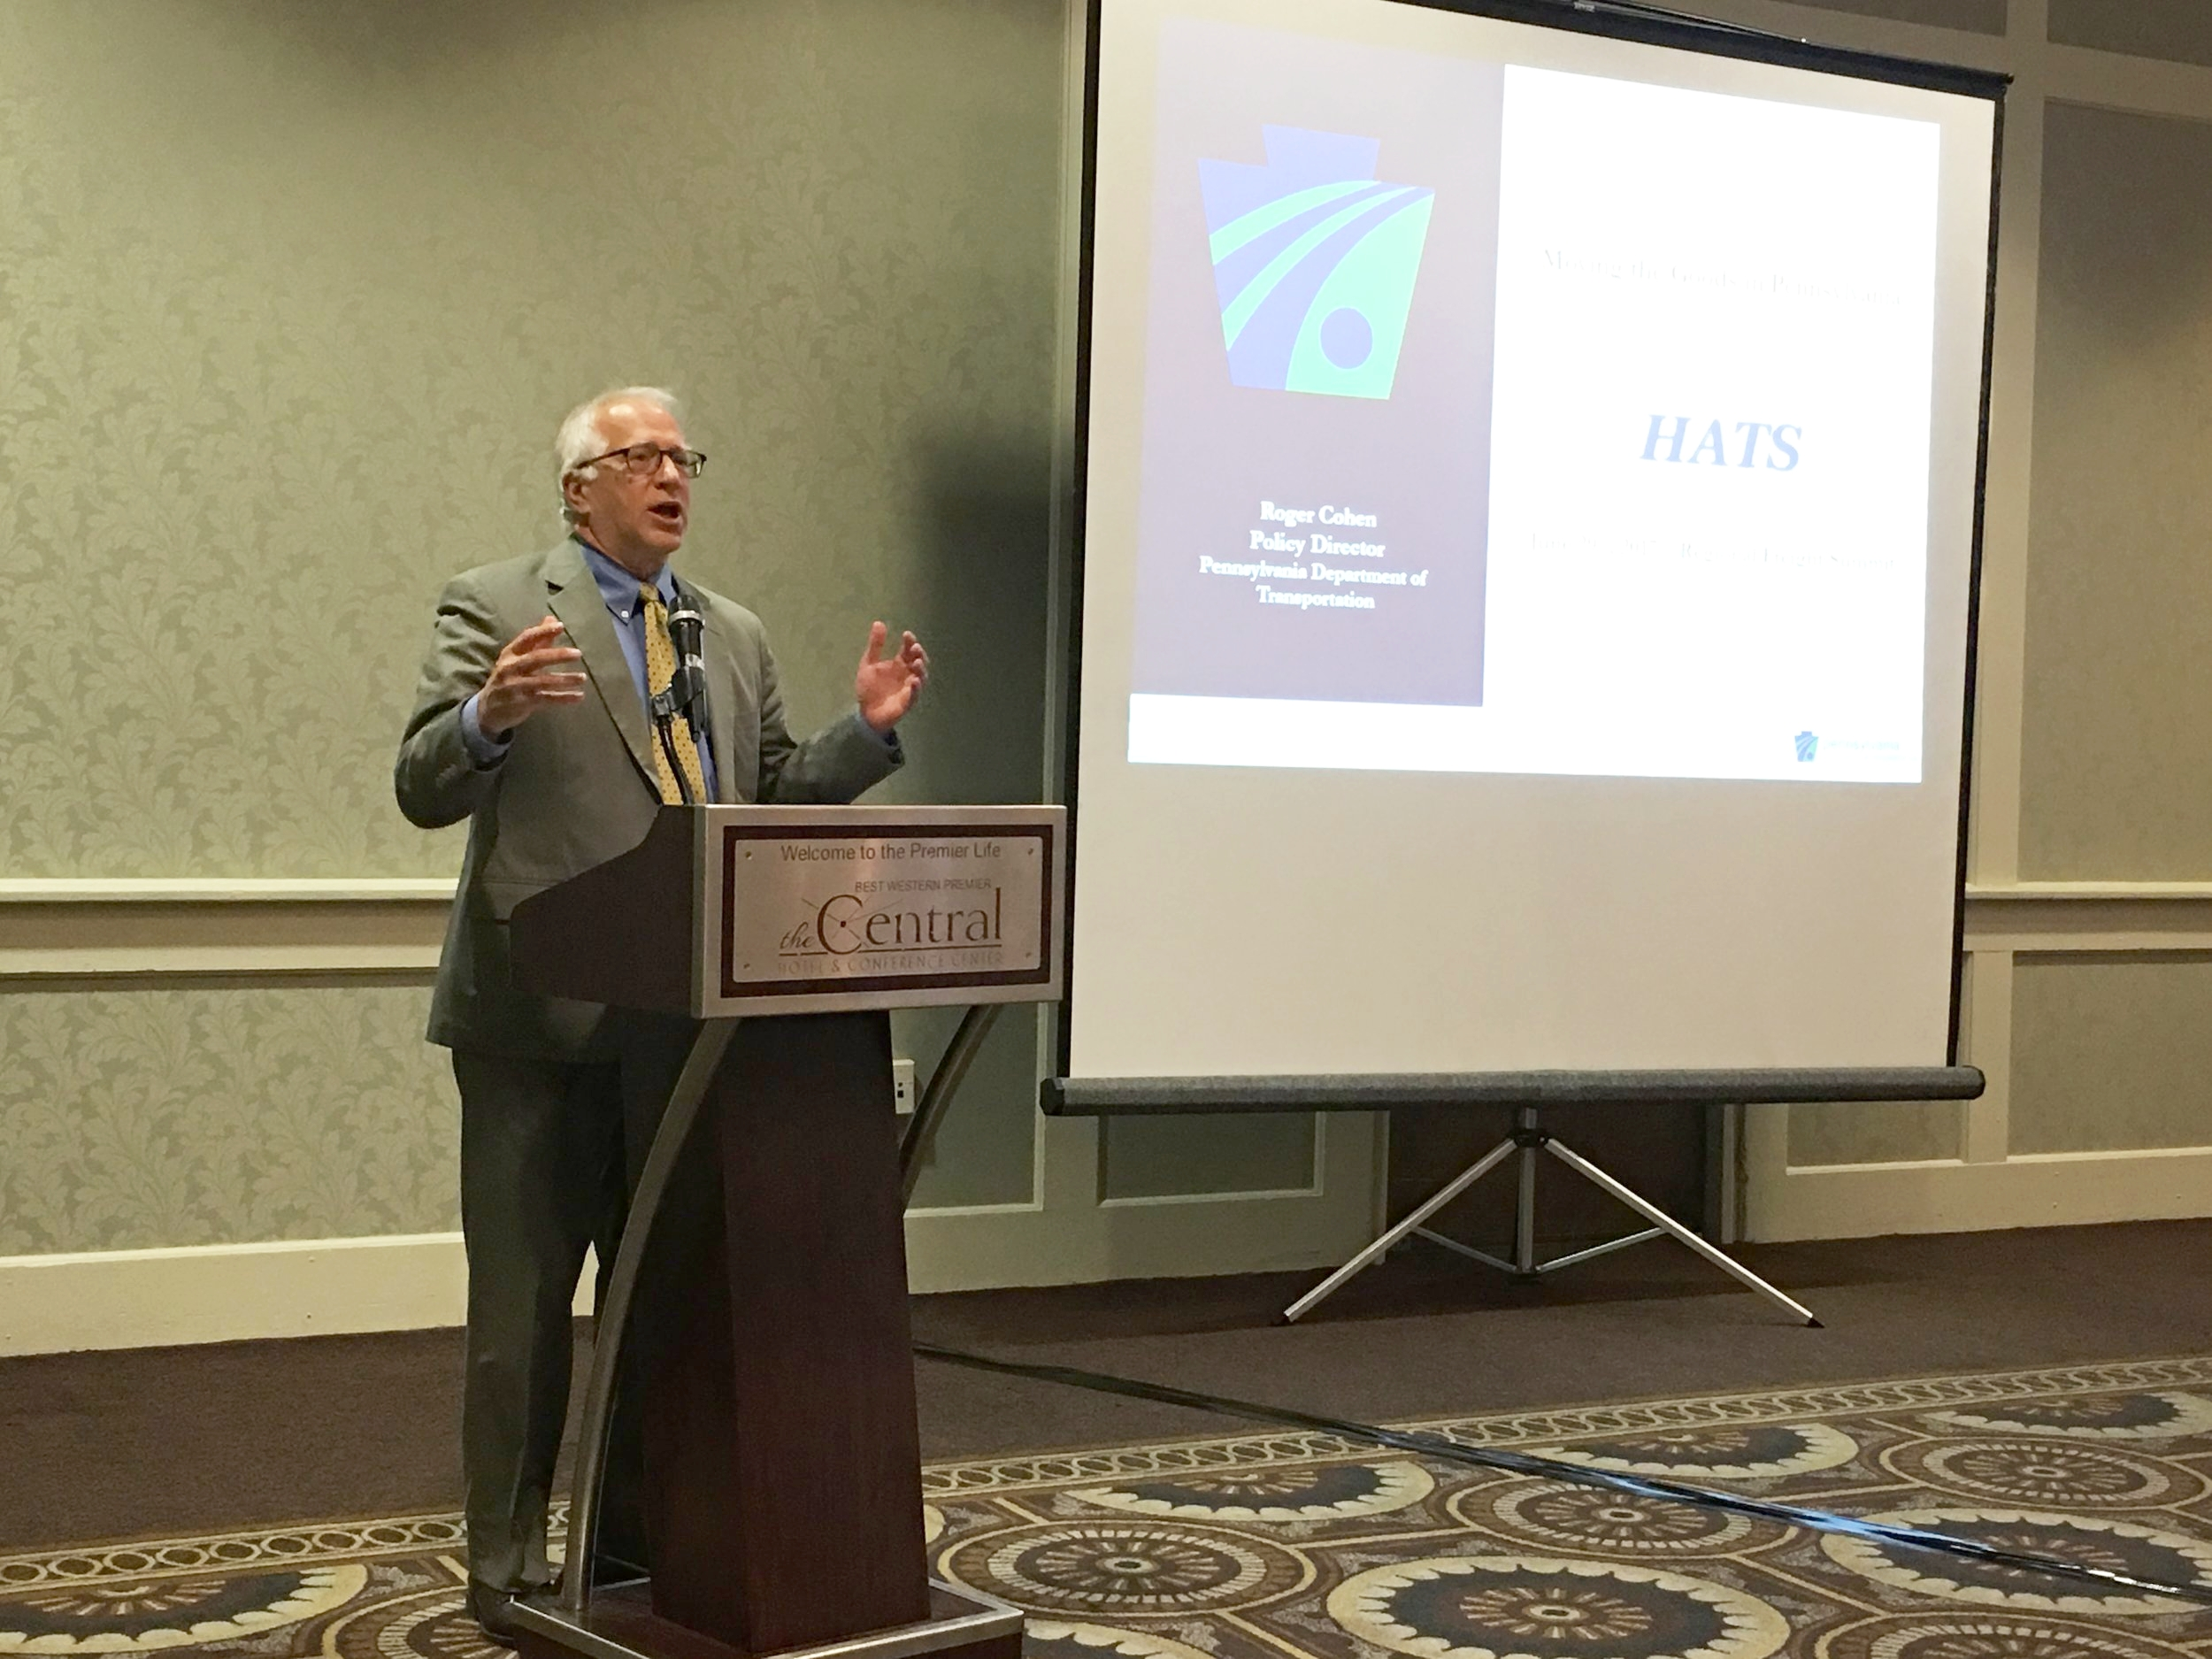 The summit's keynote speaker, PennDOT Policy Director Roger J. Cohen, discusses the state's many transportation challenges and goals, including an expected increase in truck traffic in the HATS region.